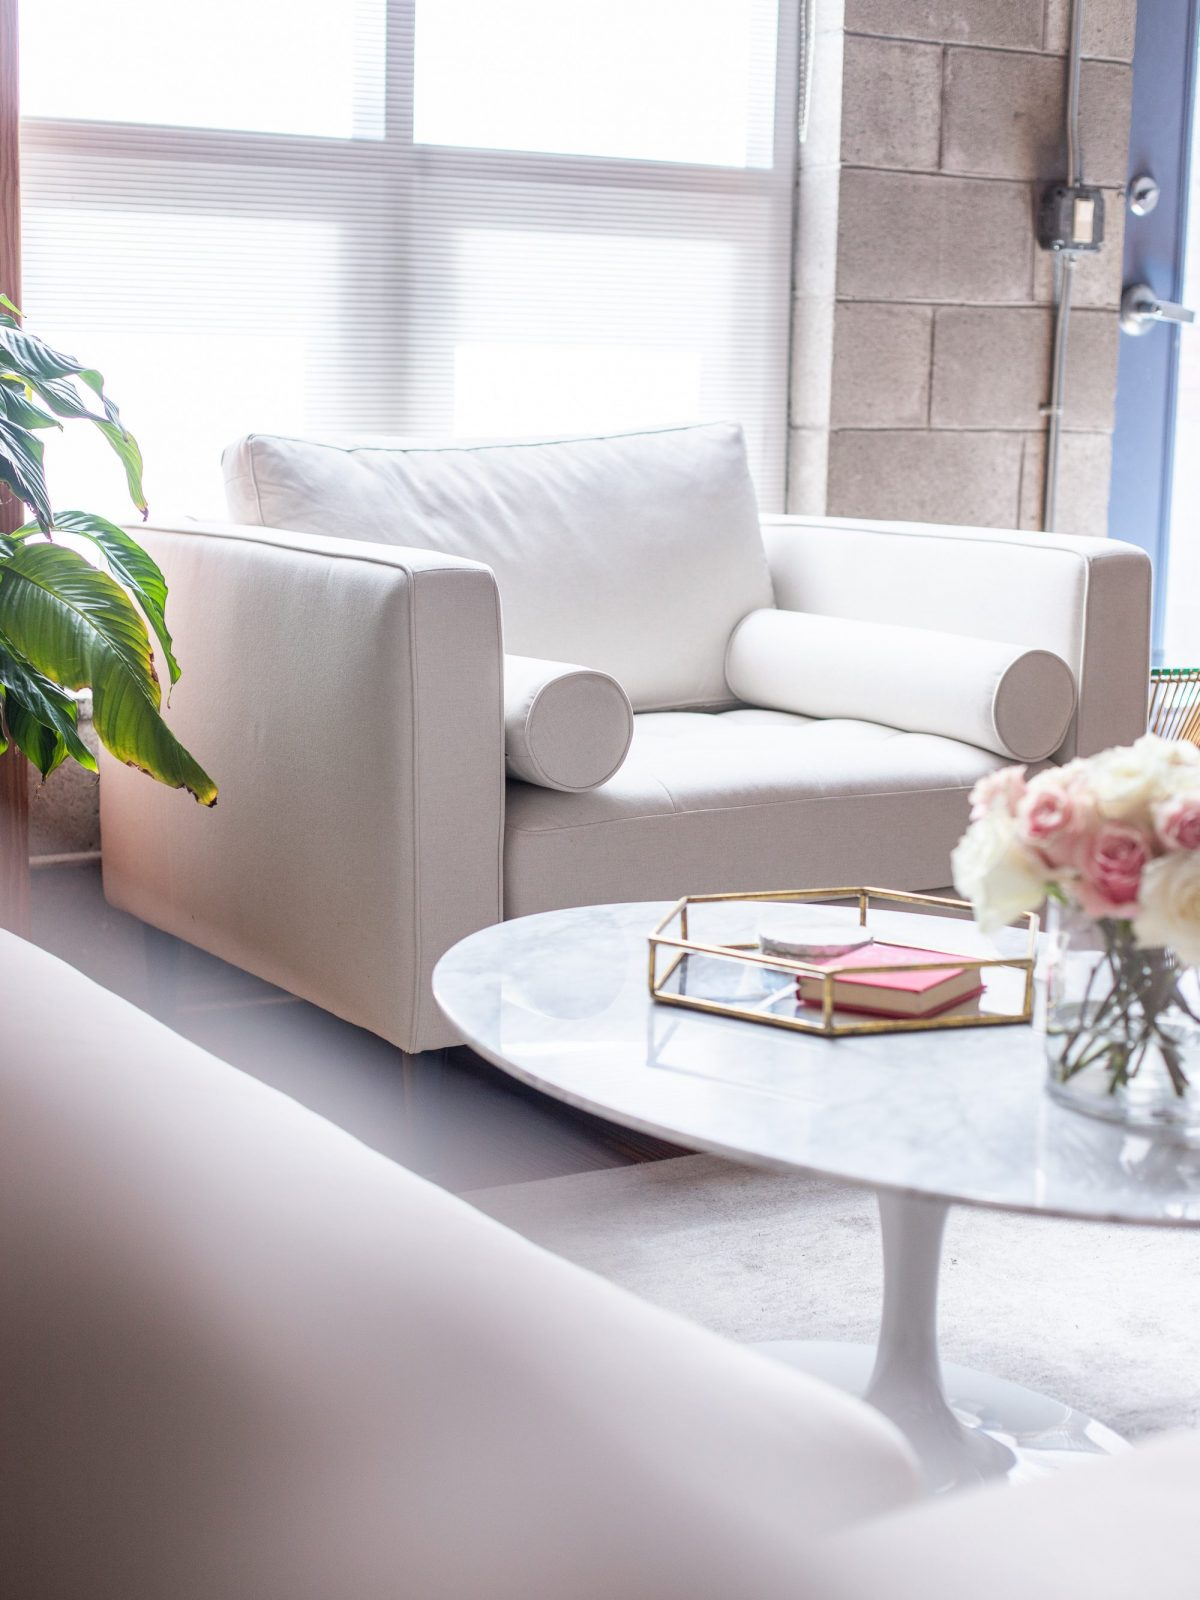 living room makeover, living room reveal, blush pink couch, rove concepts hugo sectional pink, rove concepts luca chairs white, rove concepts marble coffee table, rove concepts petal side table, rove concepts coupon code, rove concepts reviews, feminine living room style